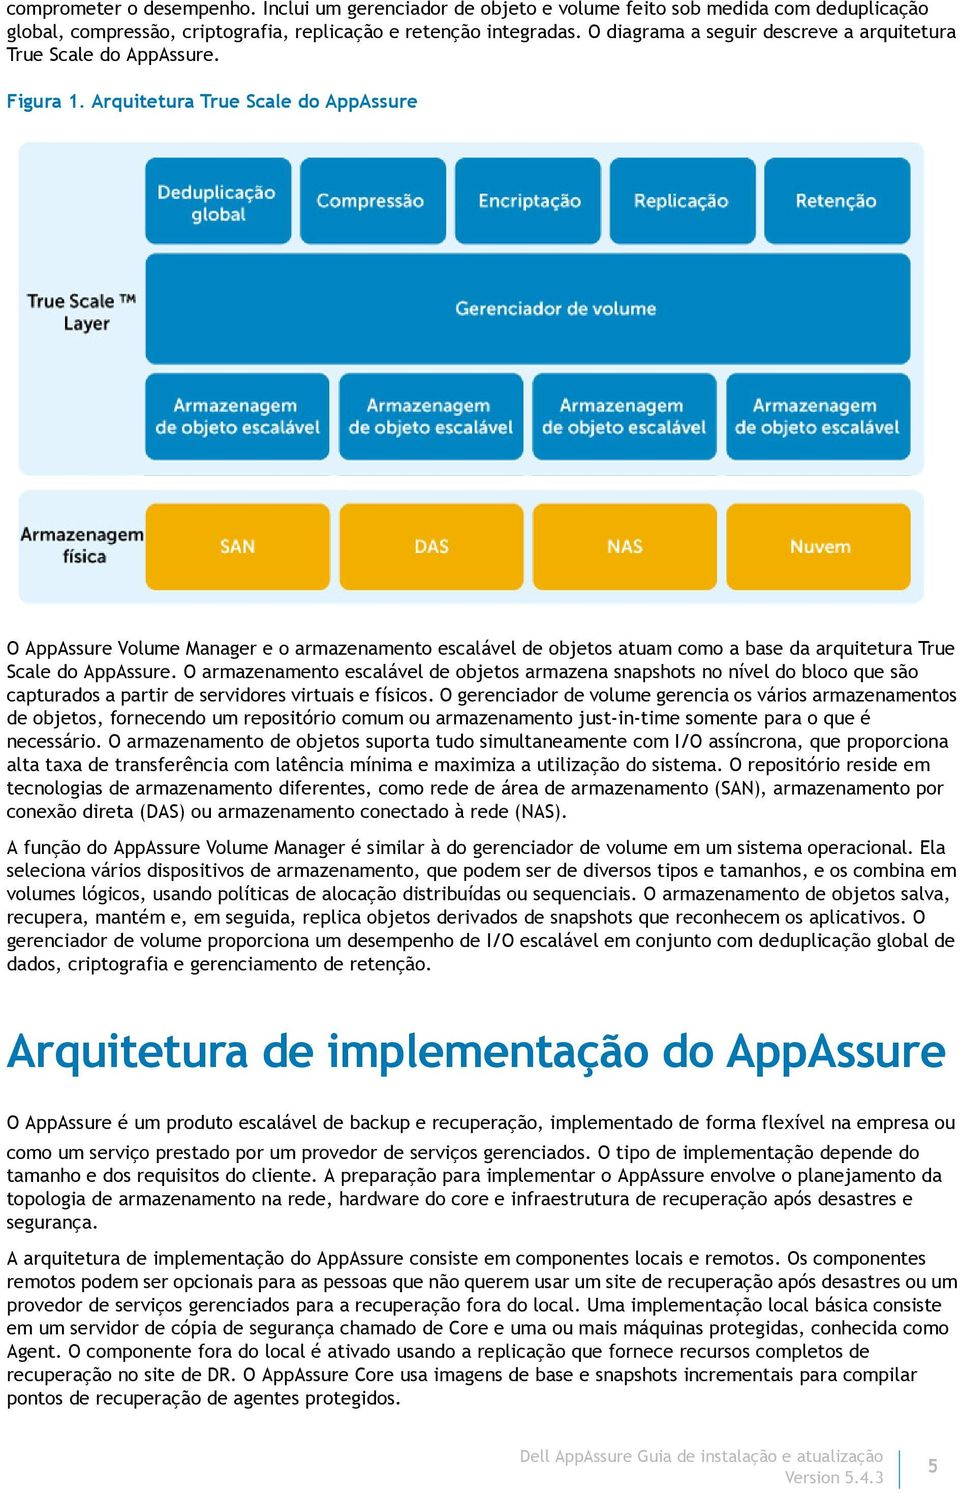 Arquitetura True Scale do AppAssure O AppAssure Volume Manager e o armazenamento escalável de objetos atuam como a base da arquitetura True Scale do AppAssure.